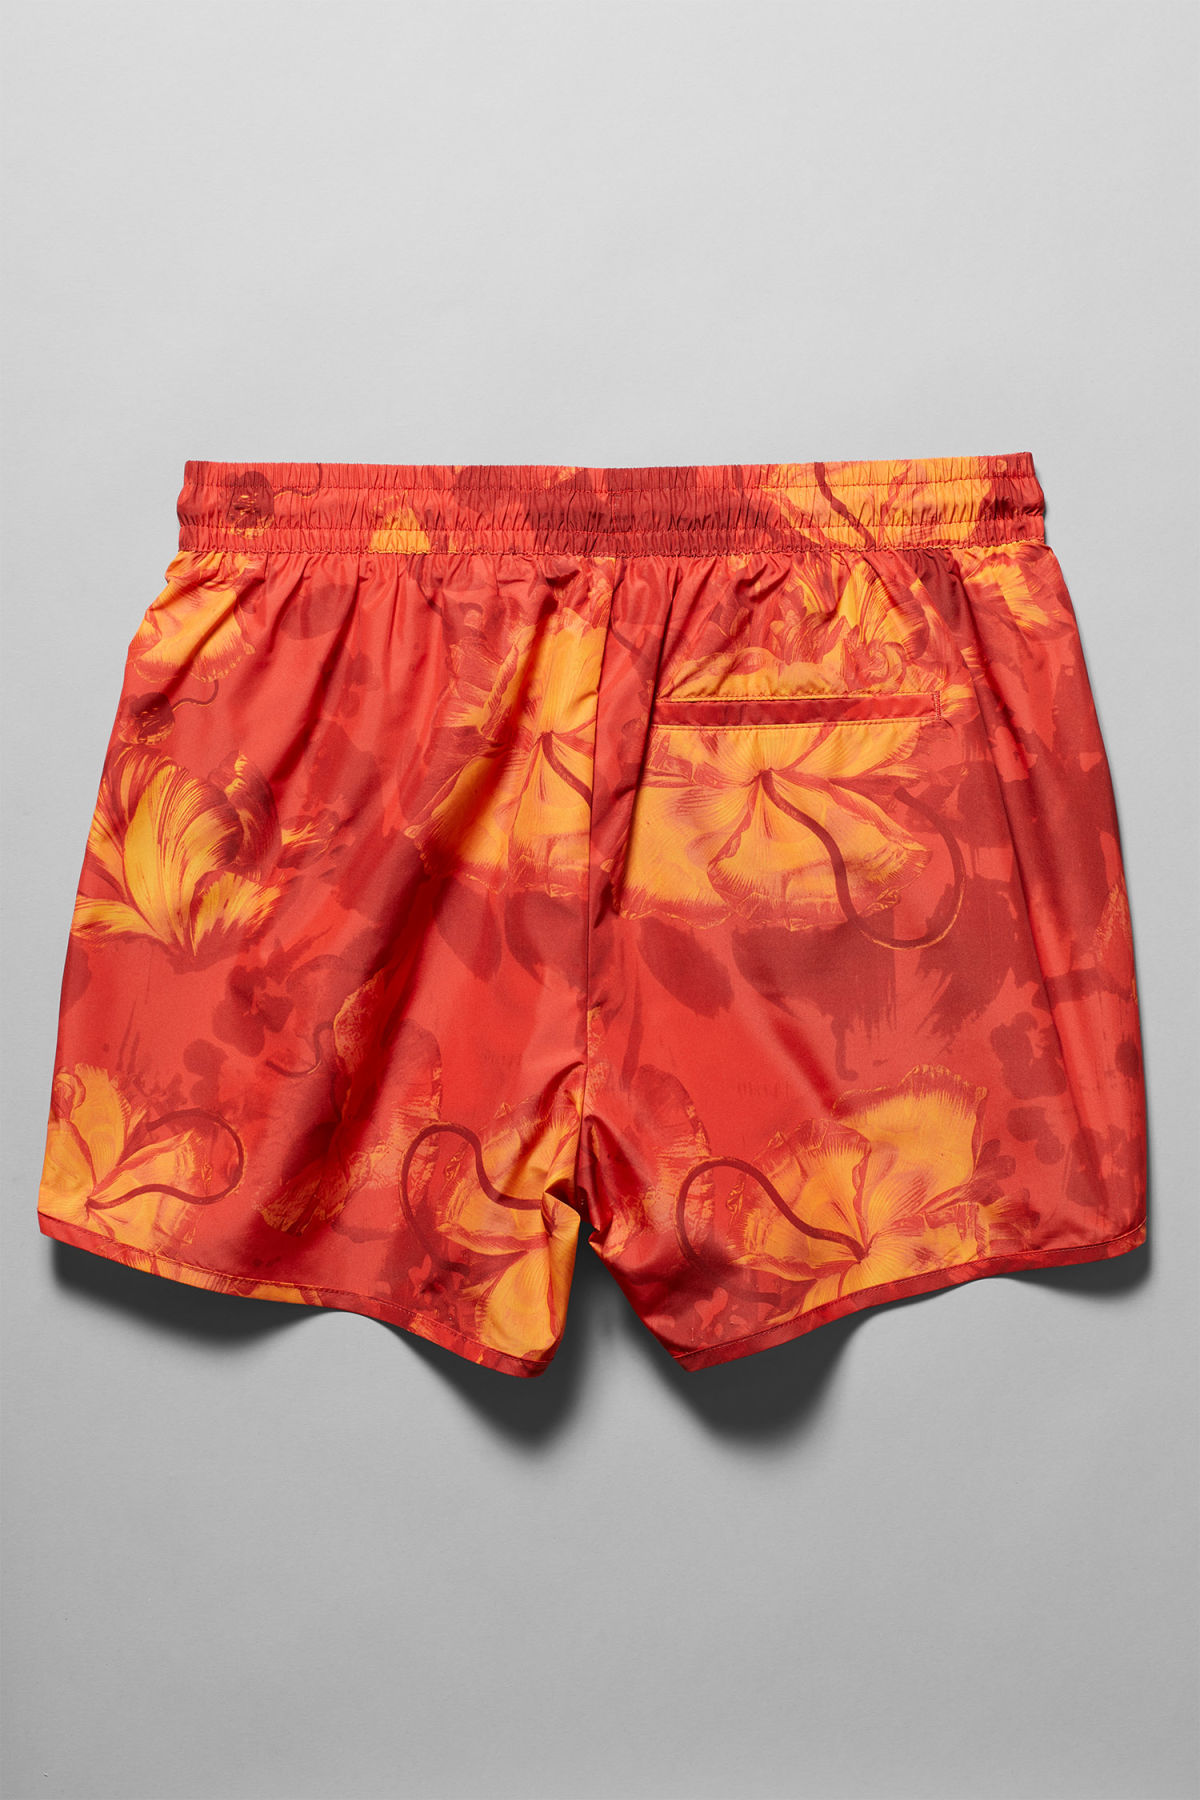 Back image of Weekday tan aop swim shorts in red